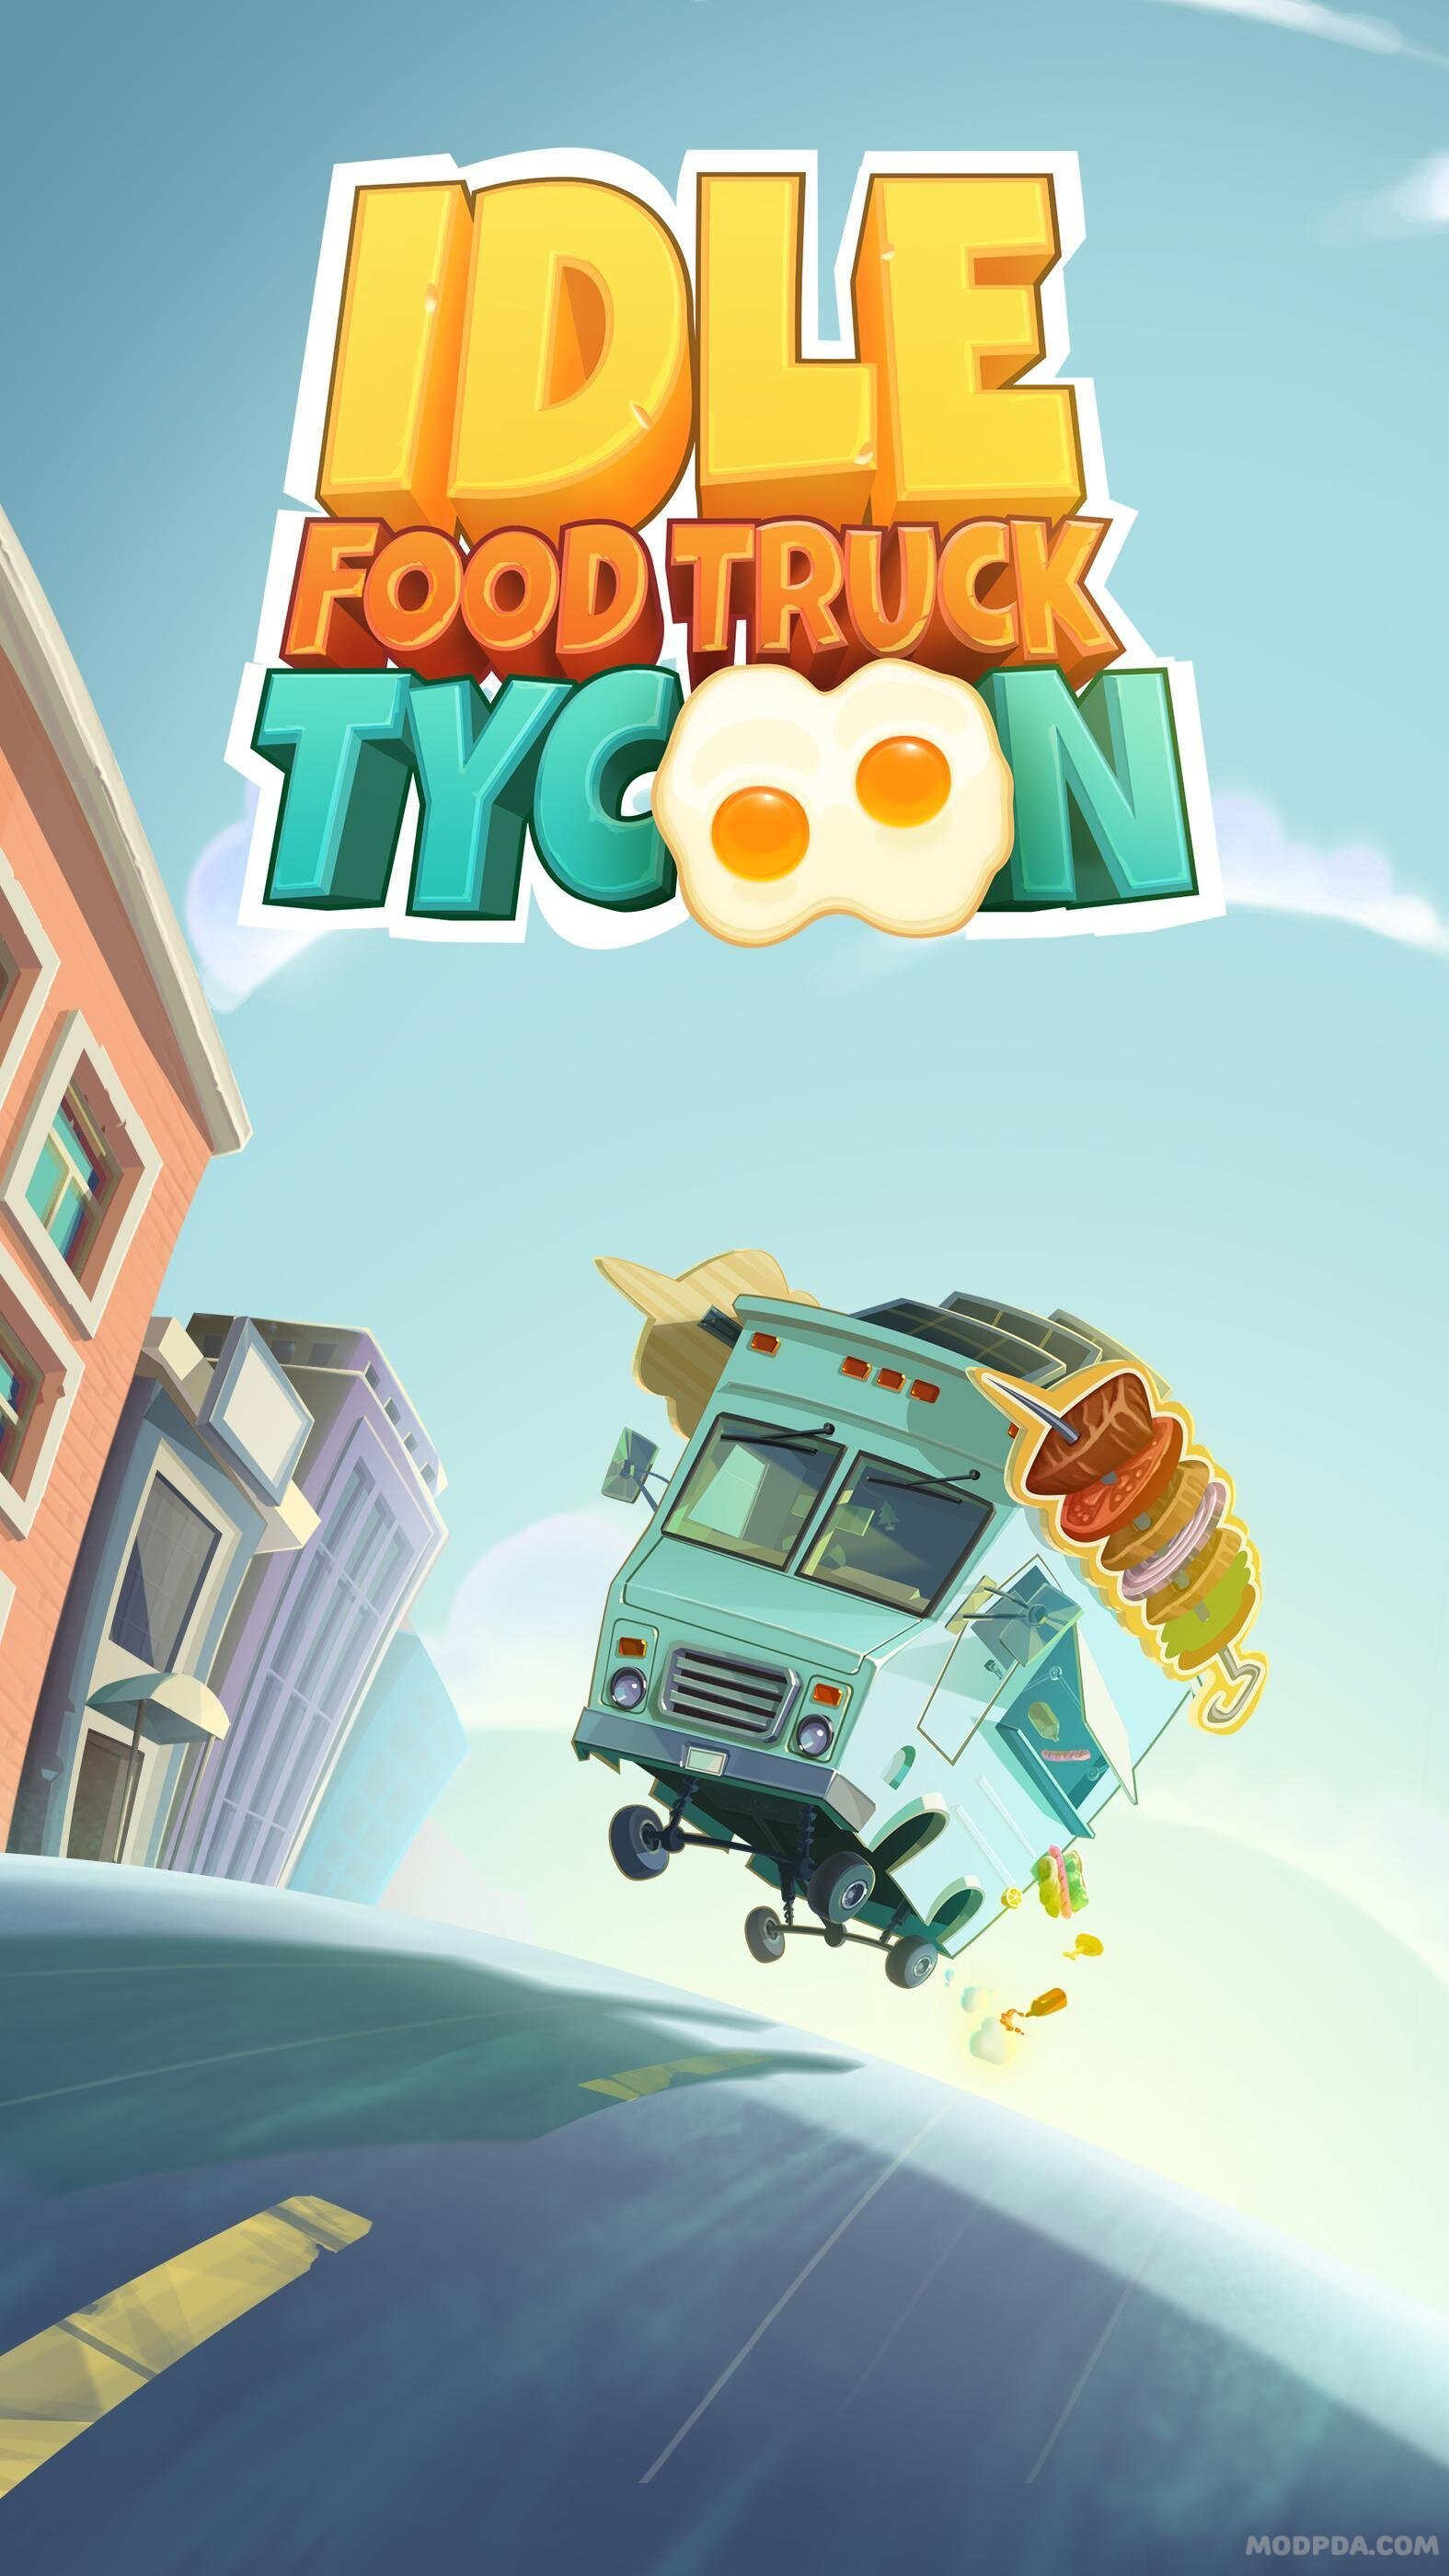 Download Idle Food Truck Tycoon™ HACK/MOD for Android